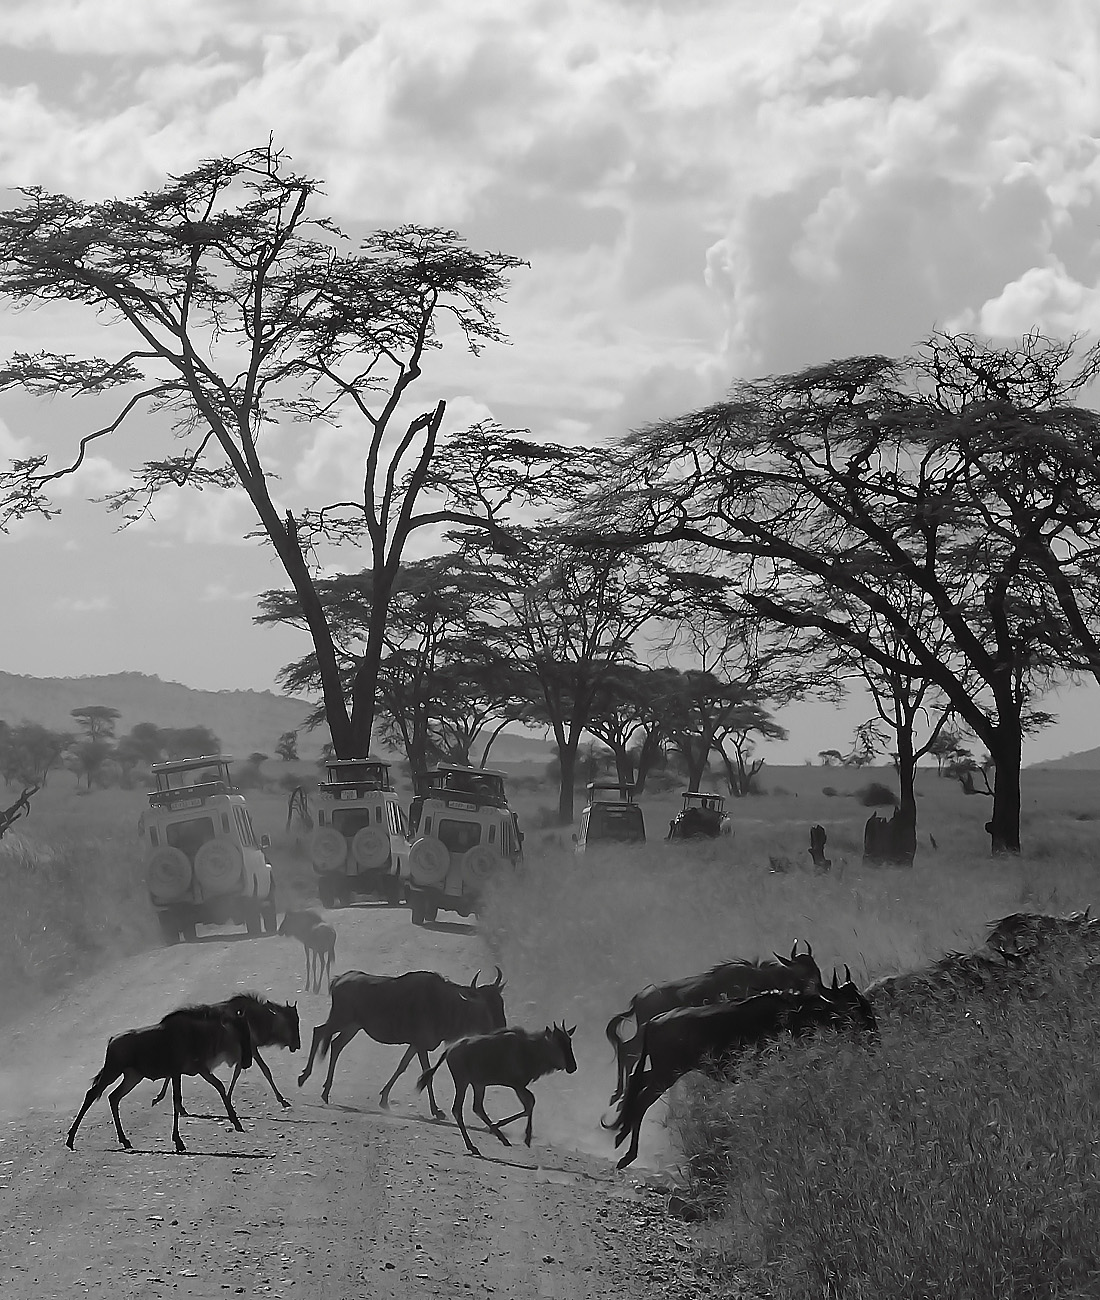 Serengeti wildebeest migration- Ultimate Wildlife Adventures